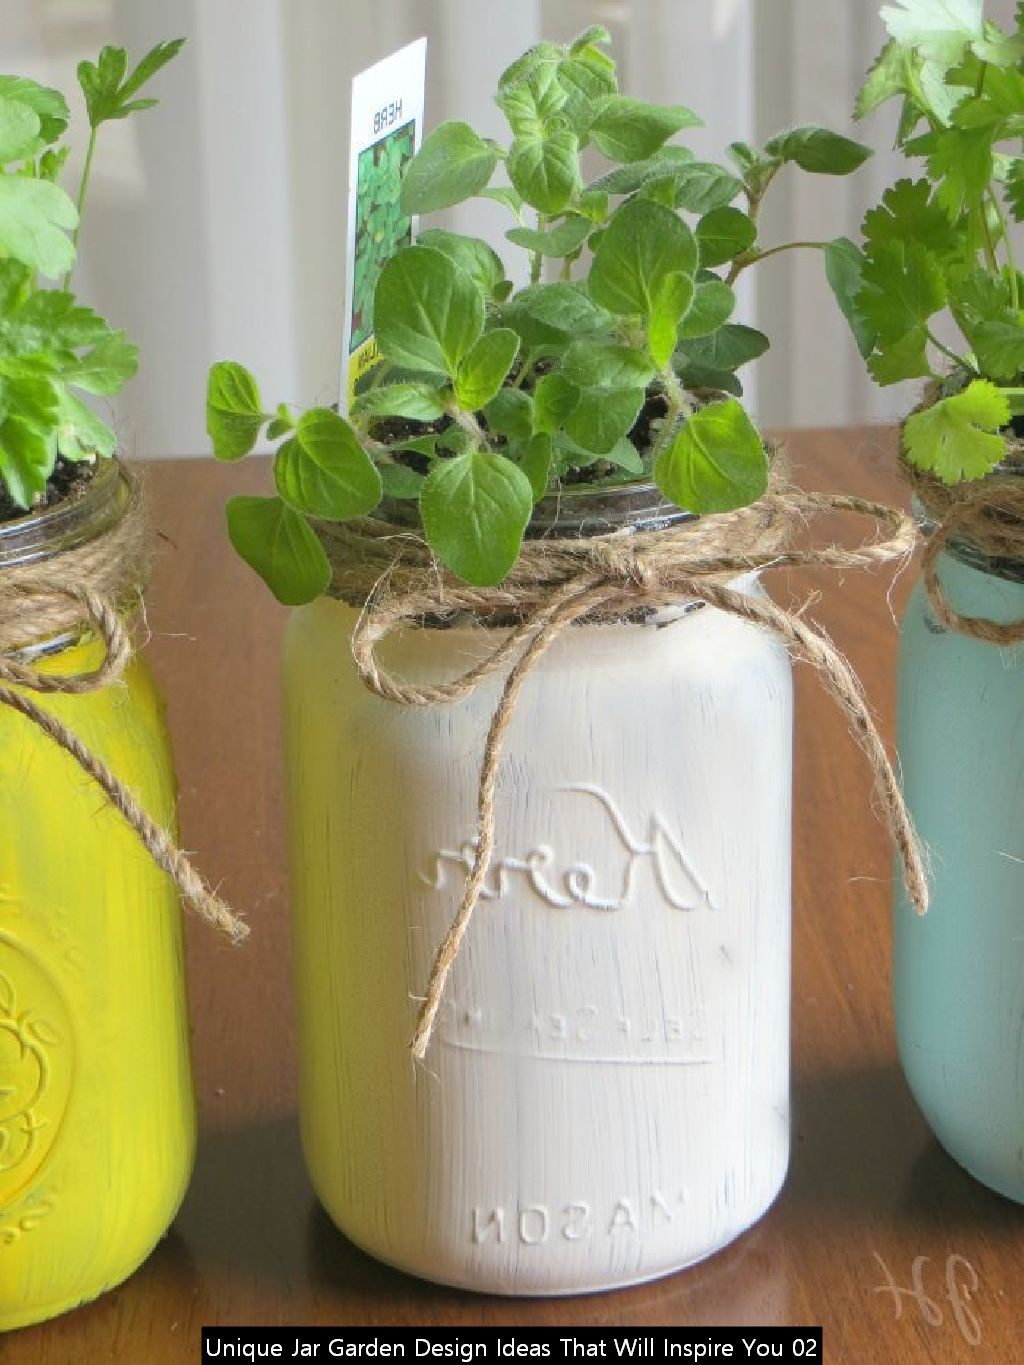 Unique Jar Garden Design Ideas That Will Inspire You 02